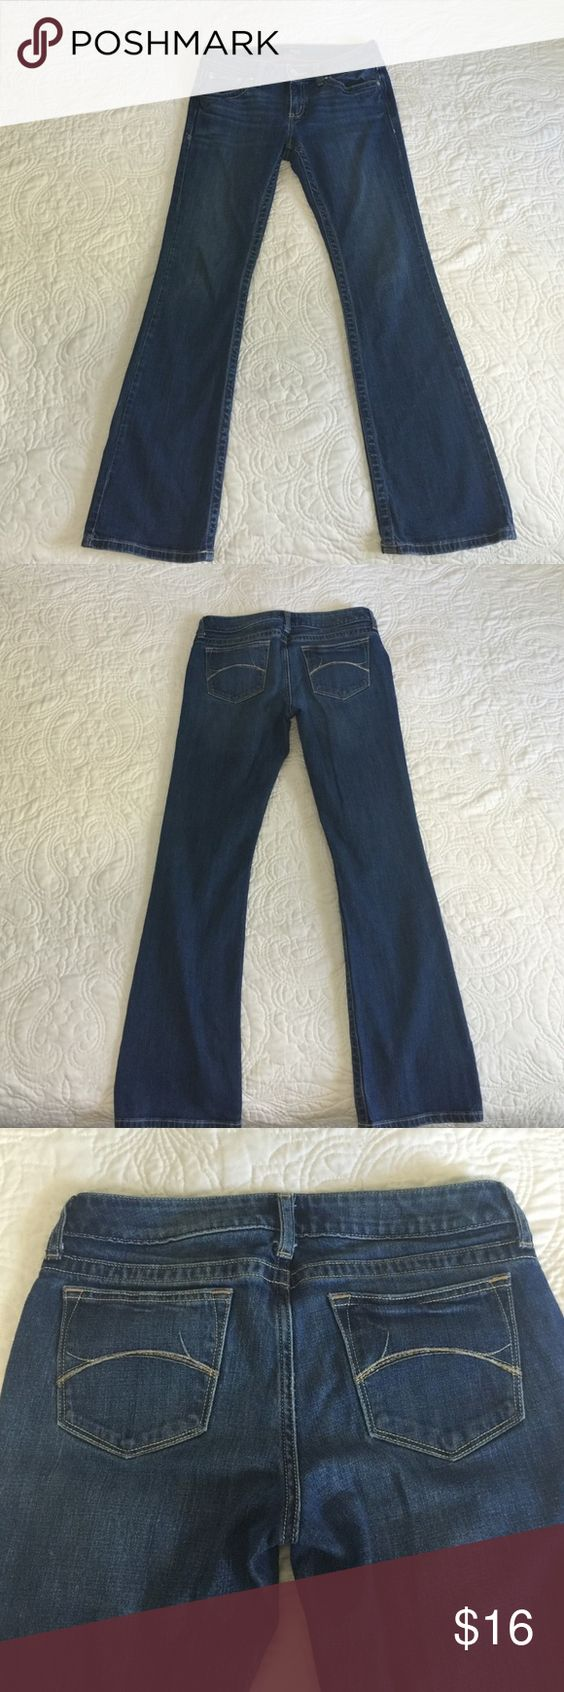 A.N.A Jeans A.N.A (a new approach) jeans. Boot cut, size 28/6 petite. Excellent condition, only worn a few times. a.n.a Jeans Boot Cut